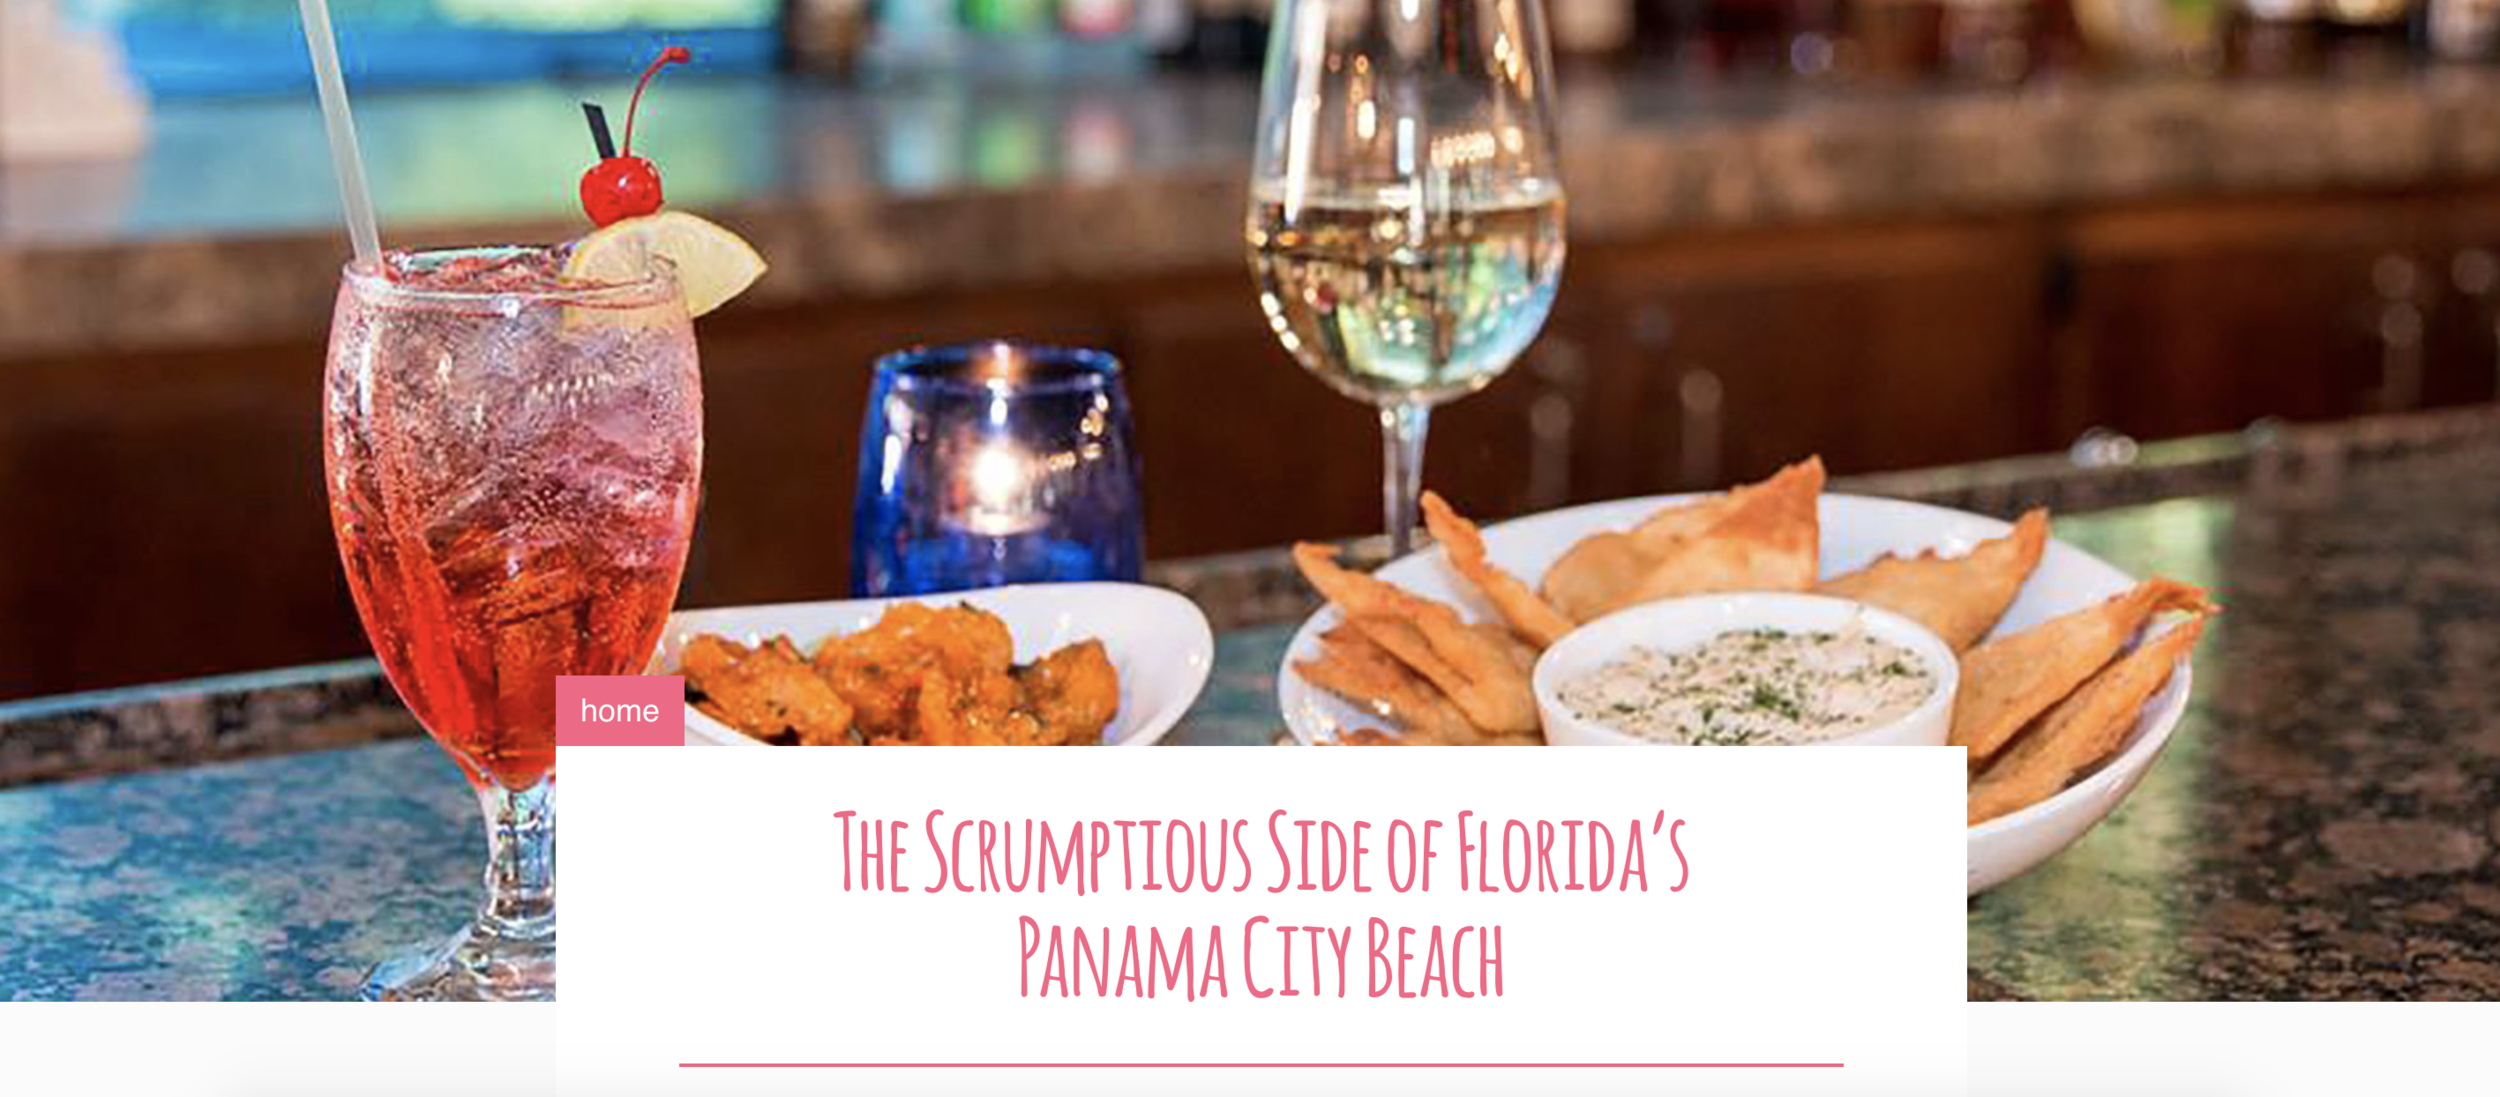 The Scrumptious Side of Florida's Panama City Beach  [Southern Living]    In Panama City Beach, Florida, every loving glance between you and your partner on a romantic date night ought to be punctuated with sip of wine or a bite of freshly caught seafood or succulent meat. Revel in evocative and dreamy dishes with carefully cultivated flavors fresh from the Gulf. Ask for a table with a view and the night ahead is yours. [ READ MORE ]